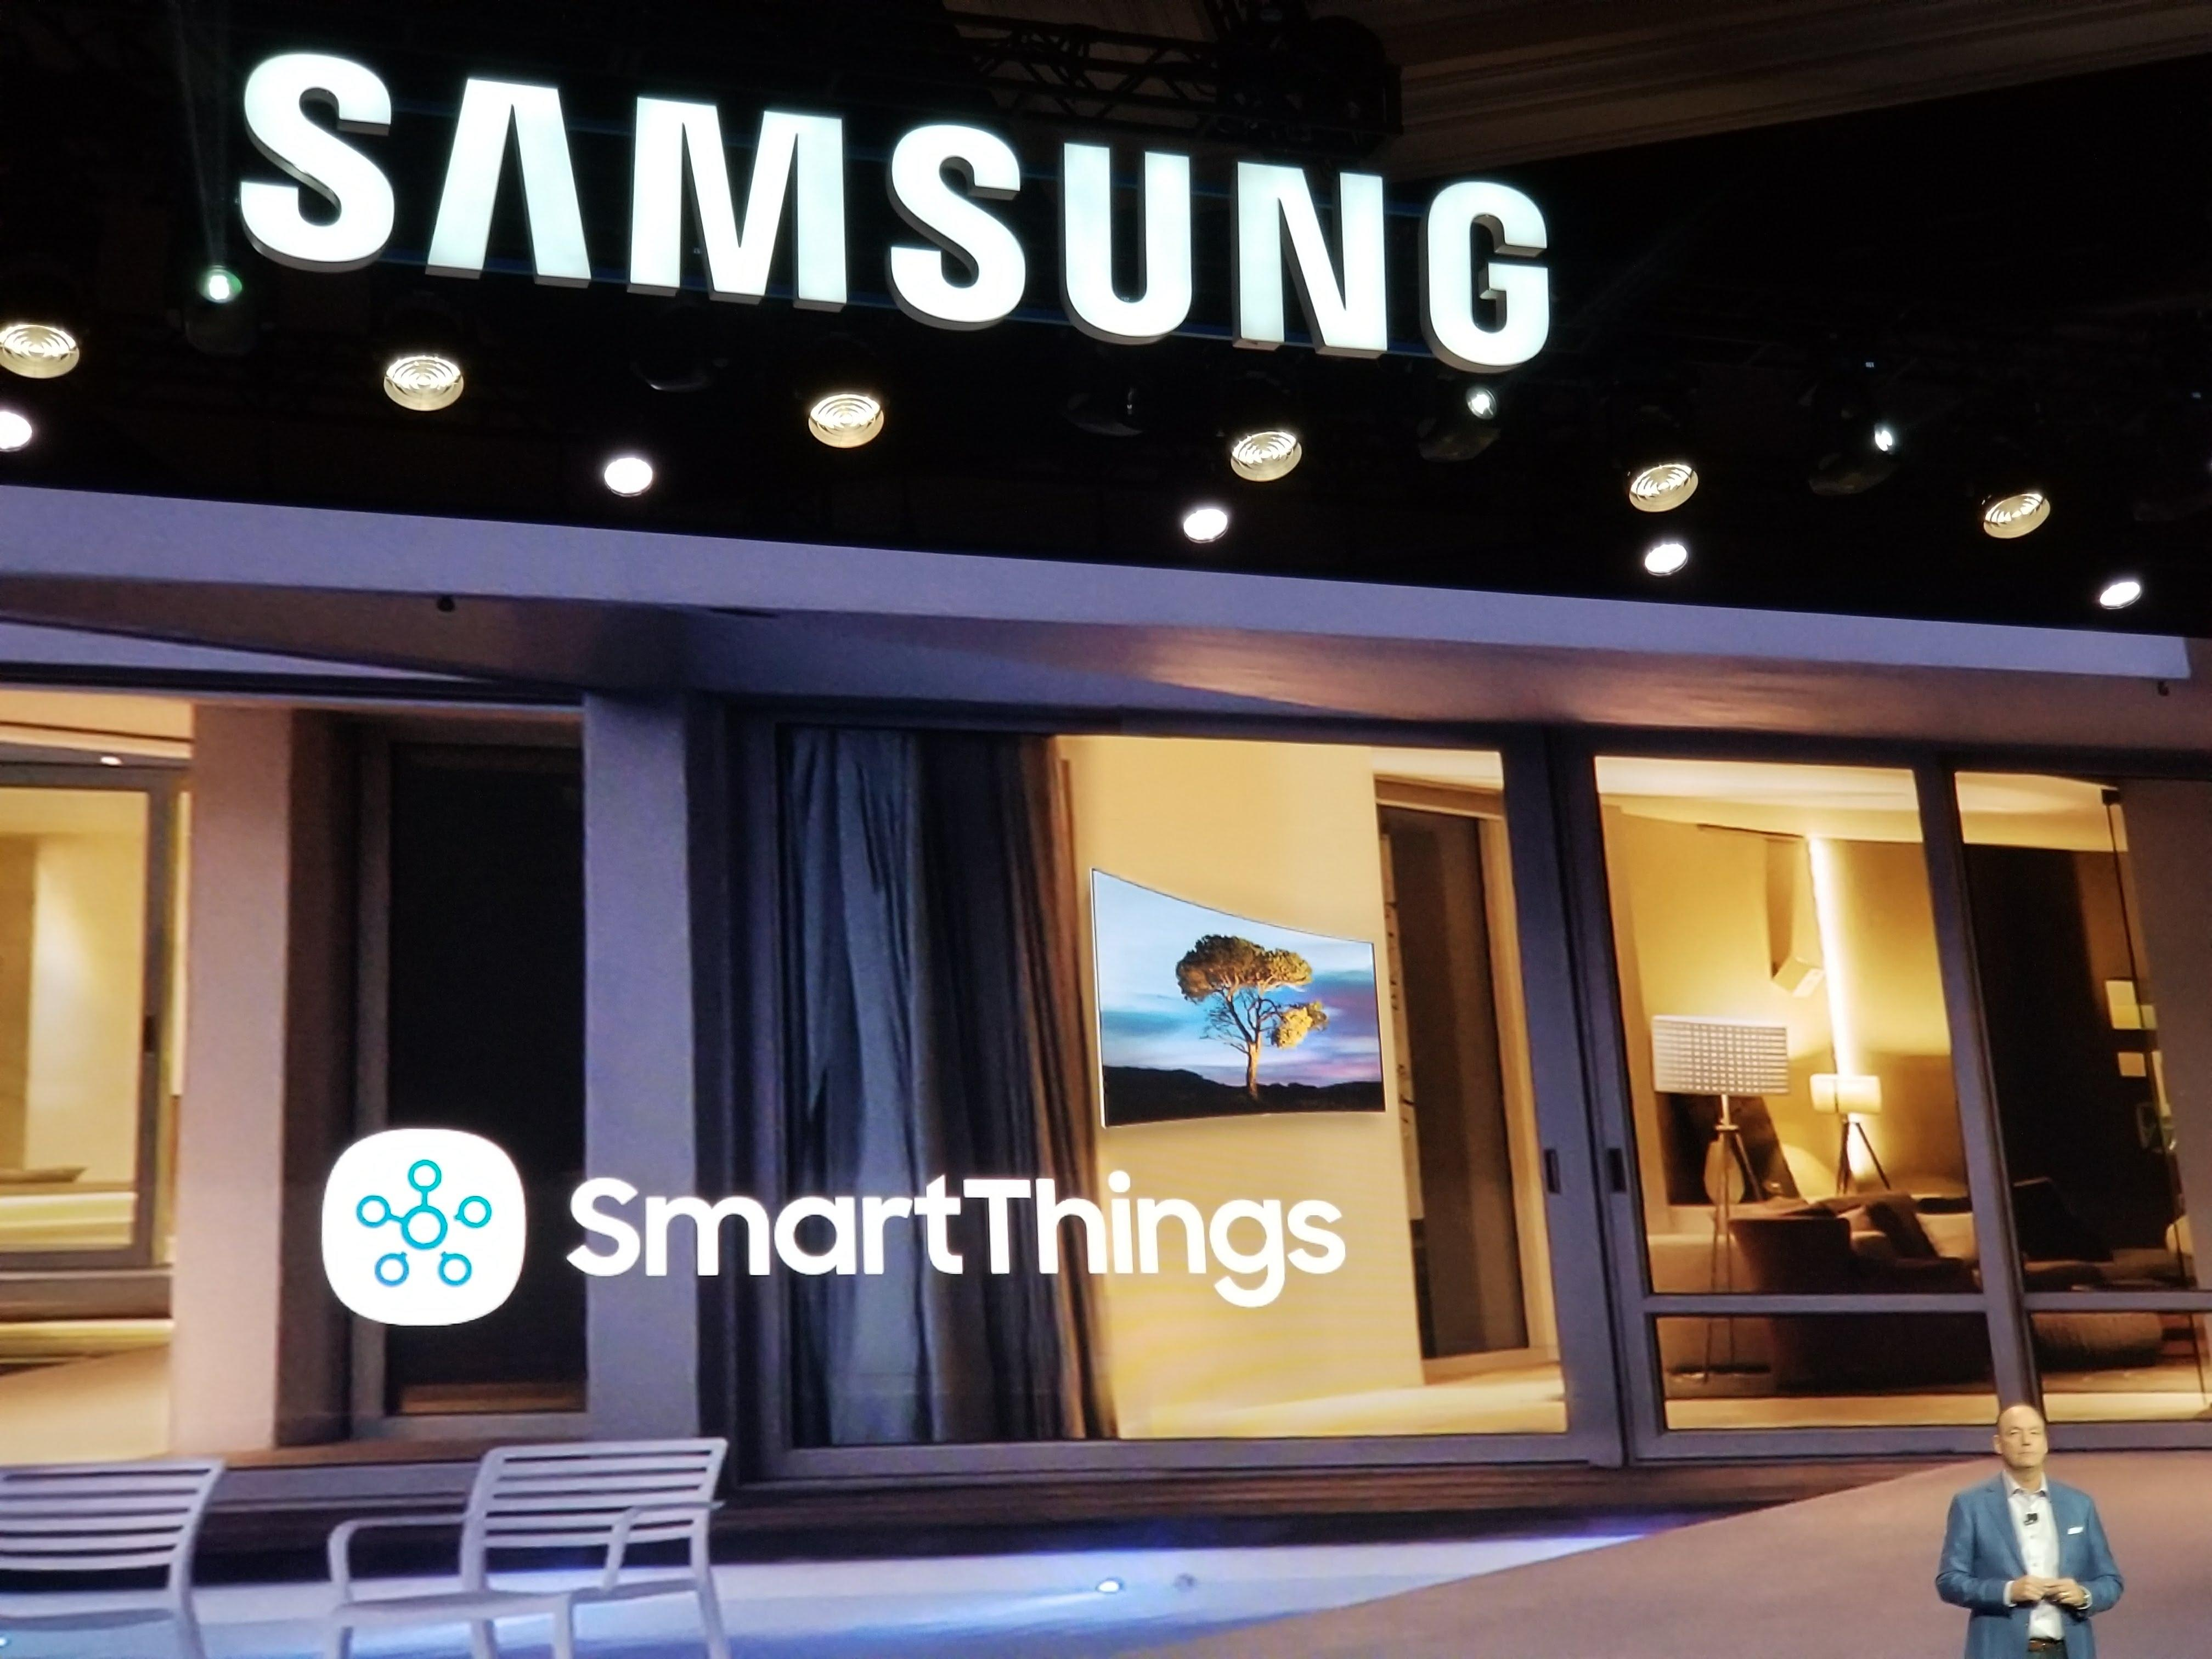 Samsung-SmartThings-CES-2018